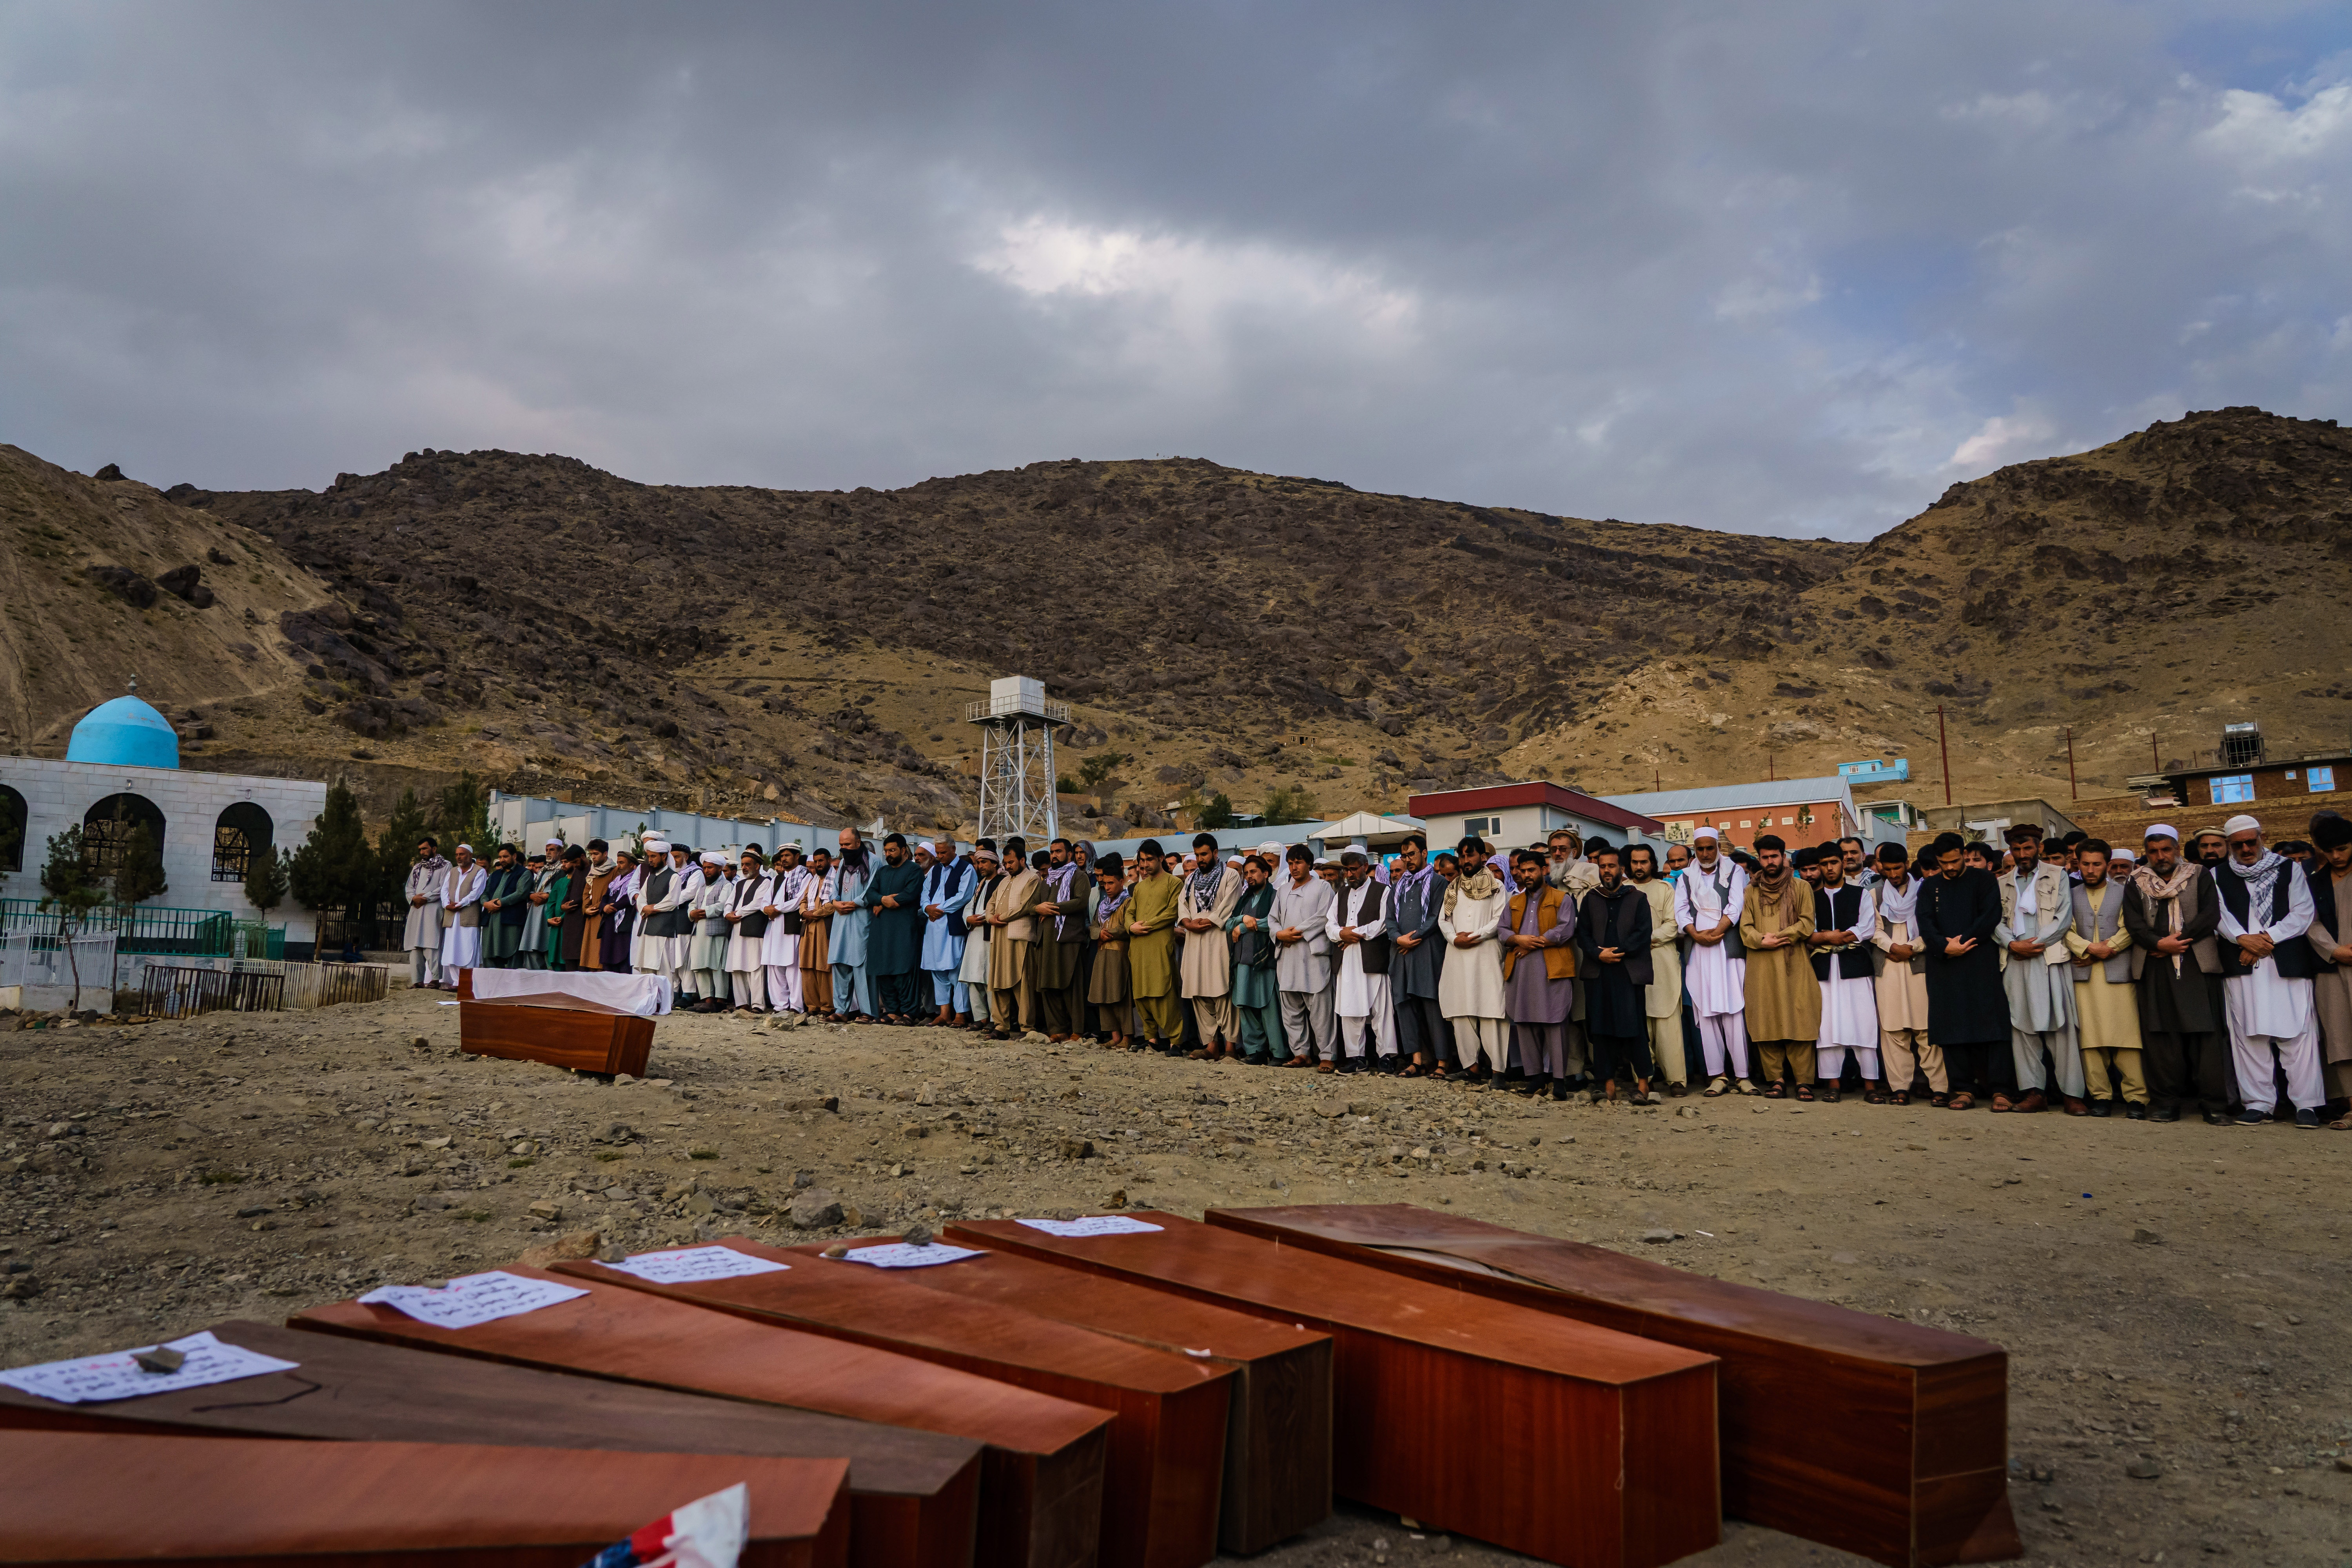 KABUL, AFGHANISTAN -- AUGUST 30, 2021: Islamic prayers are recited for the bodies before they could be laid into the ground to be buried, as around 200 people attend a mass funeral for the 10 members of a family that is said to have been killed by a U.S. drone strike, in Kabul, Afghanistan, Monday, Aug. 30, 2021. (MARCUS YAM / LOS ANGELES TIMES)